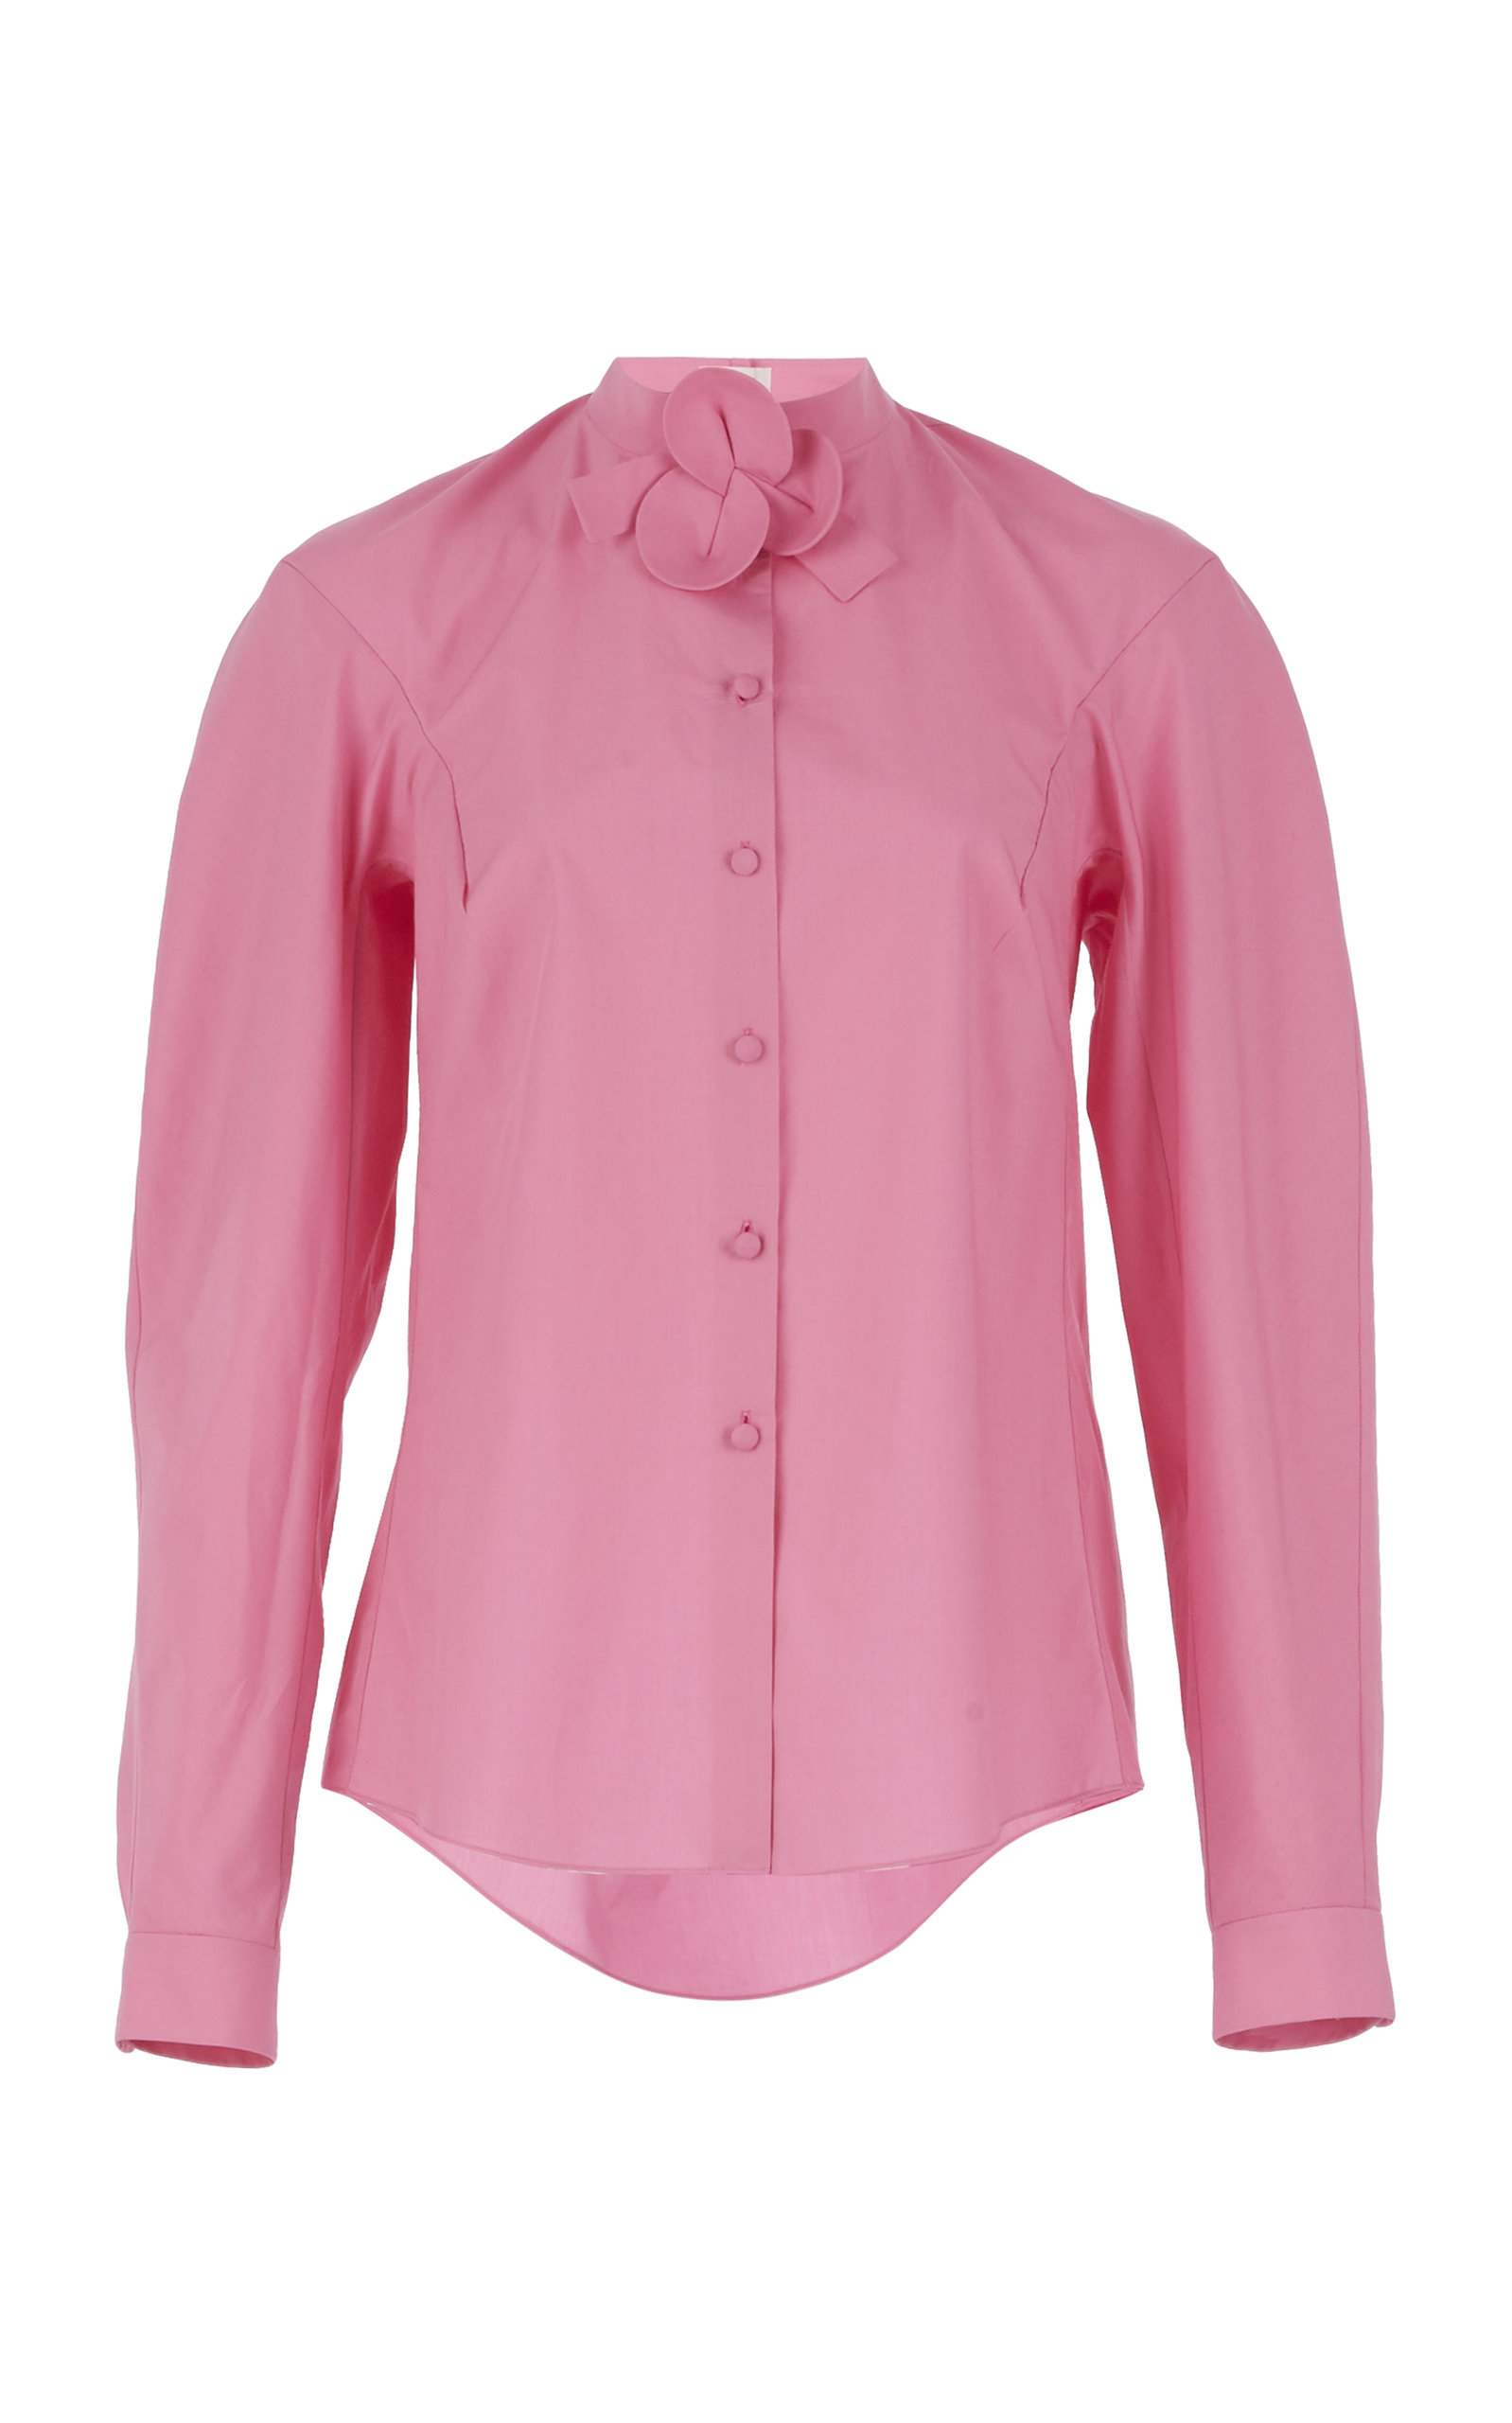 Shirt With Flower Neckband in Pink